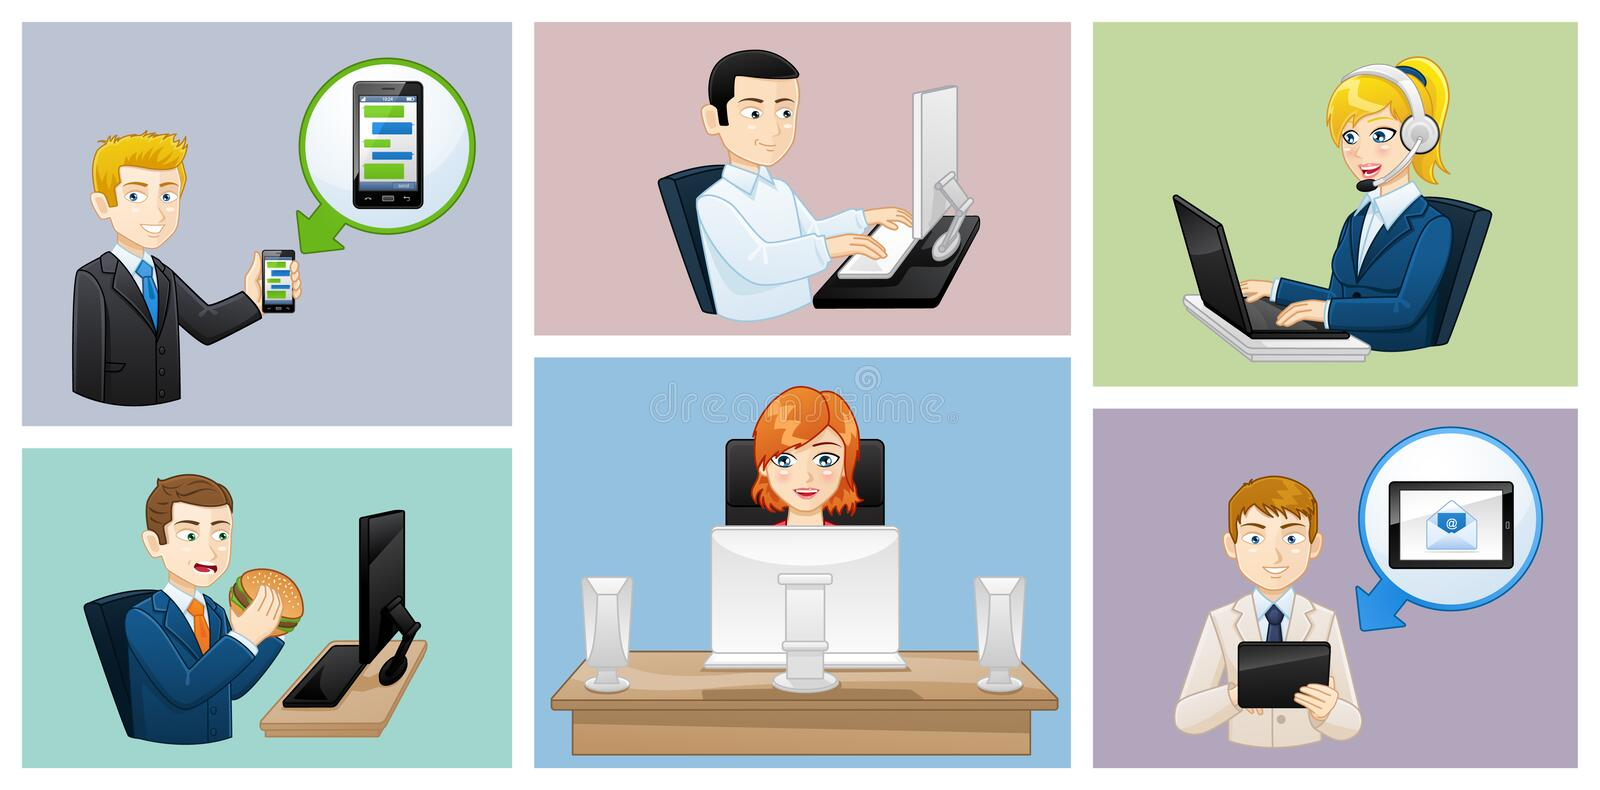 Business people icons avatars - work situations - Illustration. Avatars of Business people at work royalty free illustration